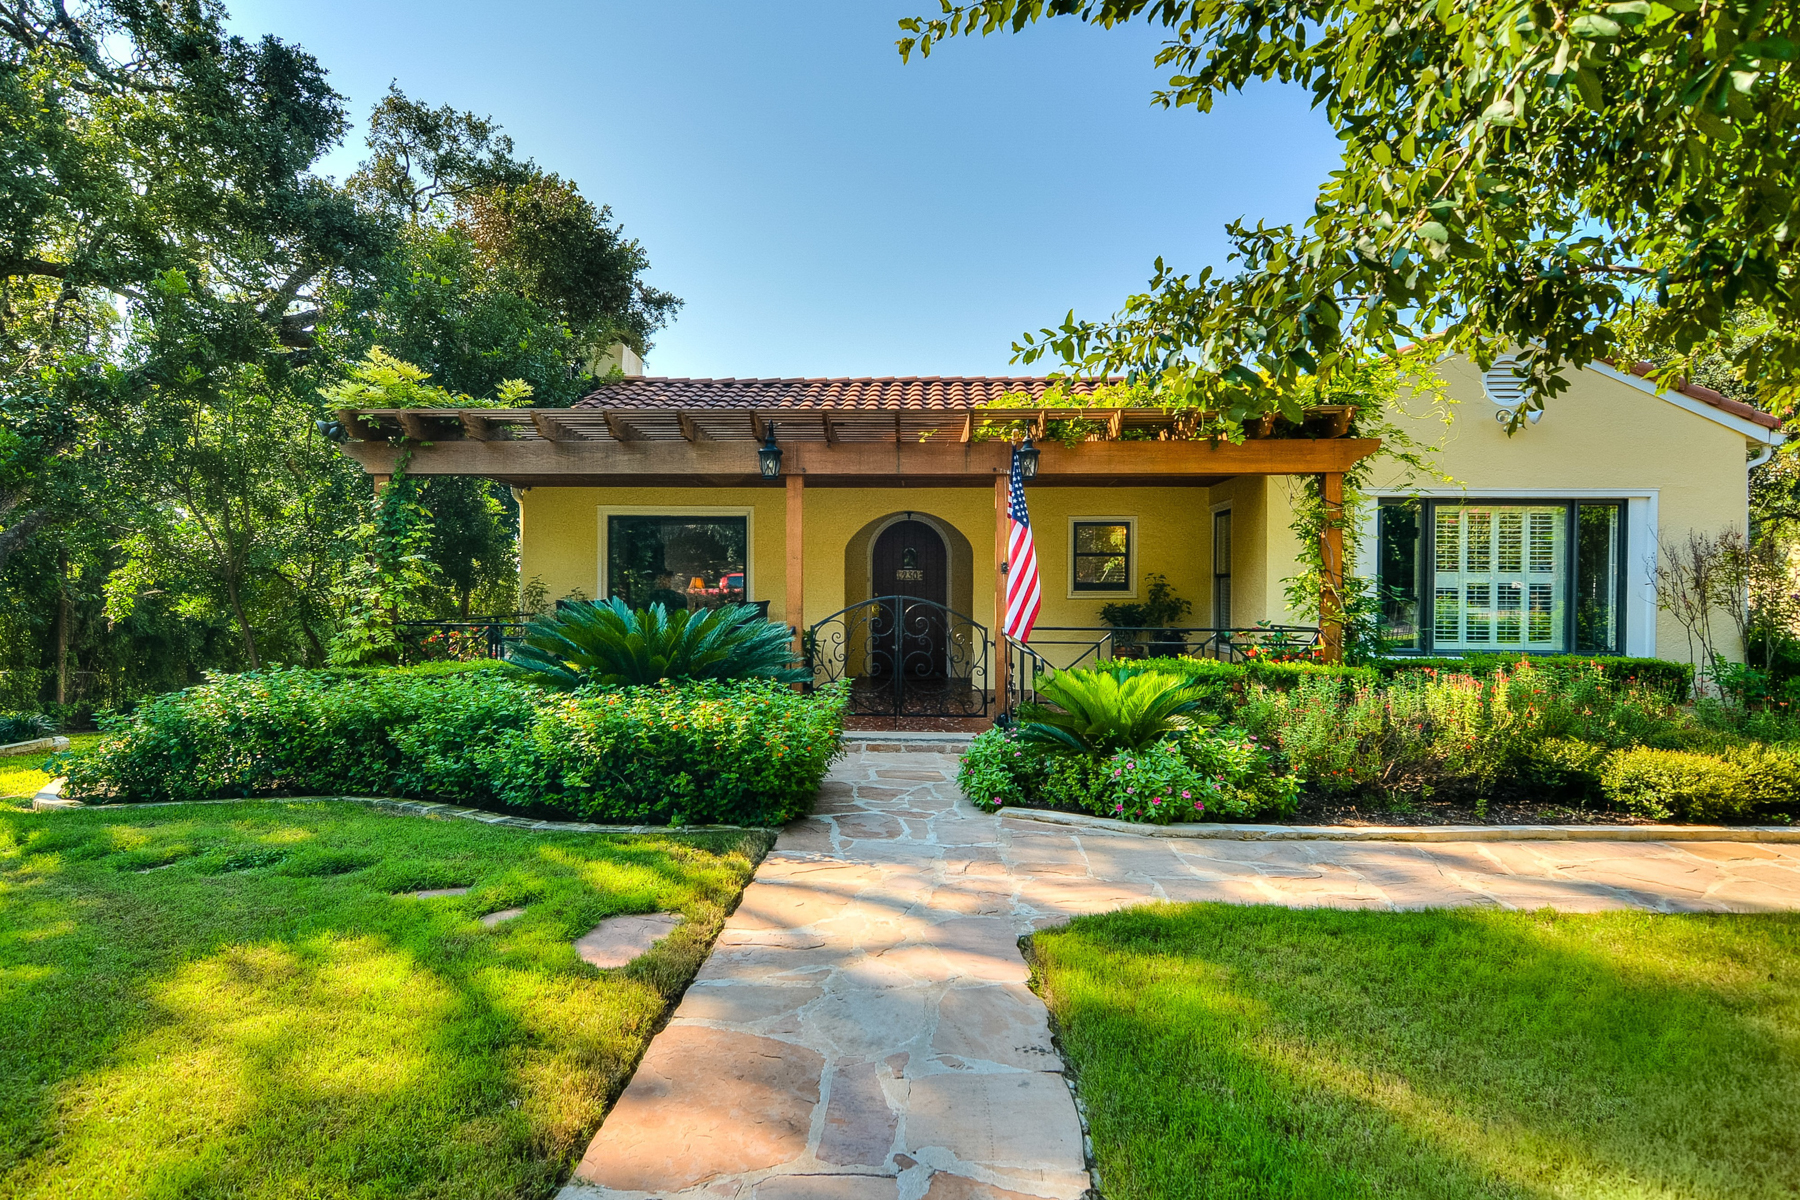 Single Family Home for Sale at Impeccable Home in Sunset Hills 230 Skyview Dr W San Antonio, Texas 78228 United States